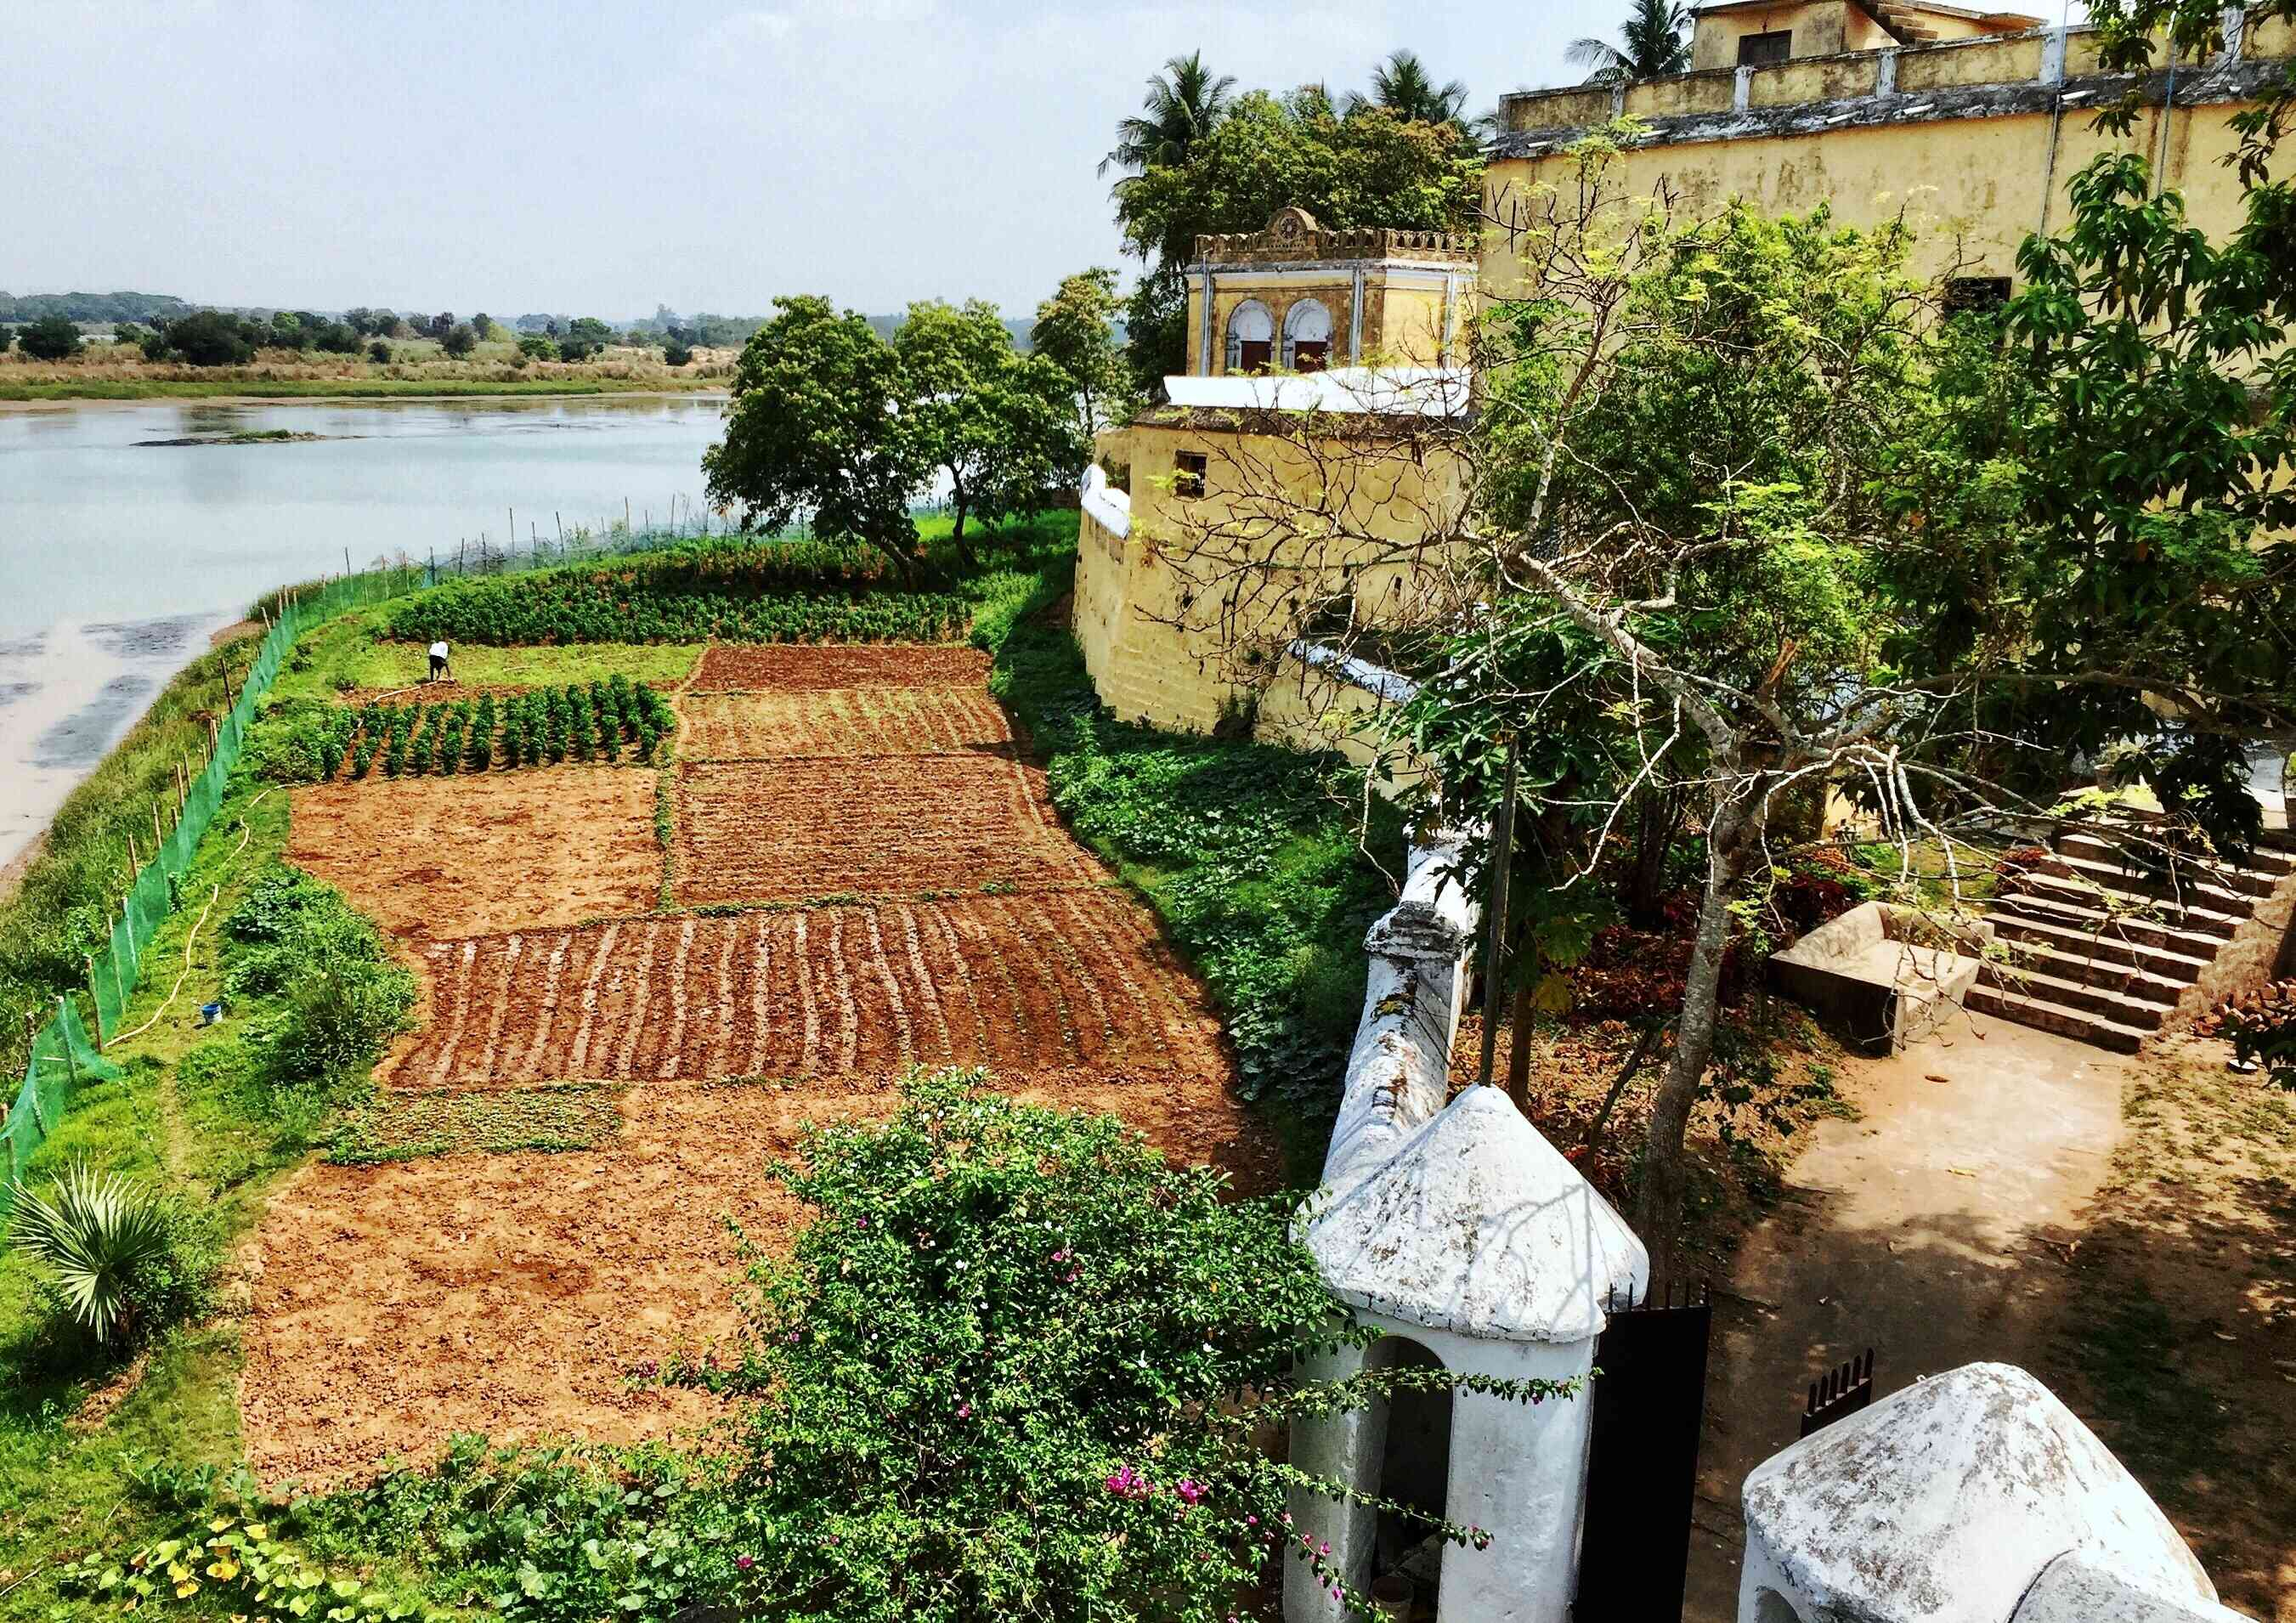 Small crop field next to an old building at Killa Aul, Odisha.